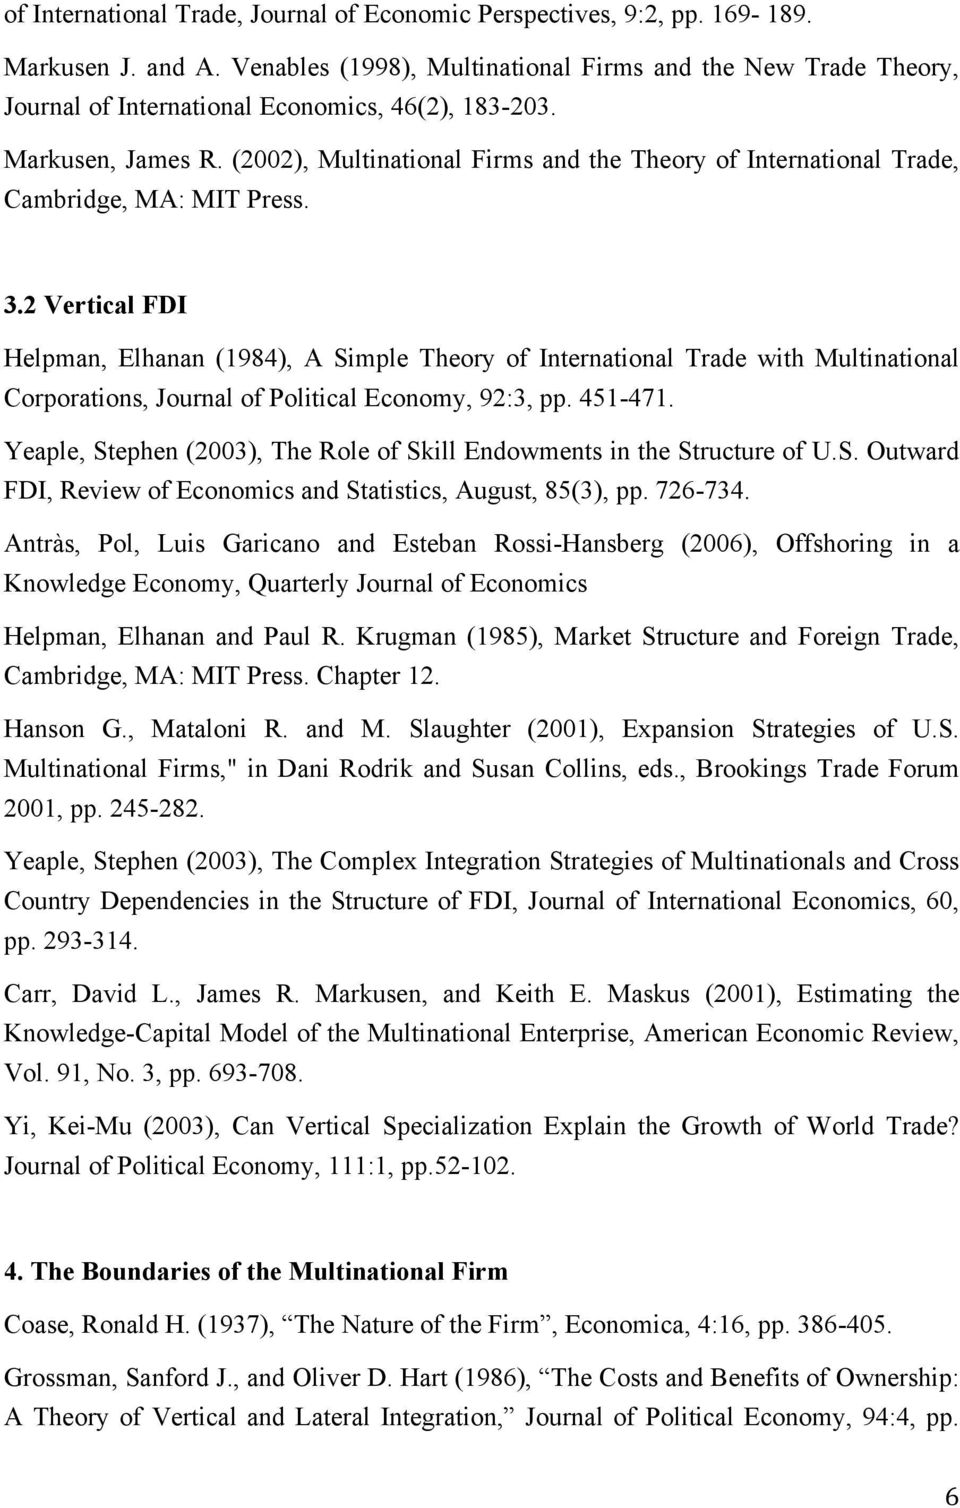 (2002), Multinational Firms and the Theory of International Trade, Cambridge, MA: MIT Press. 3.